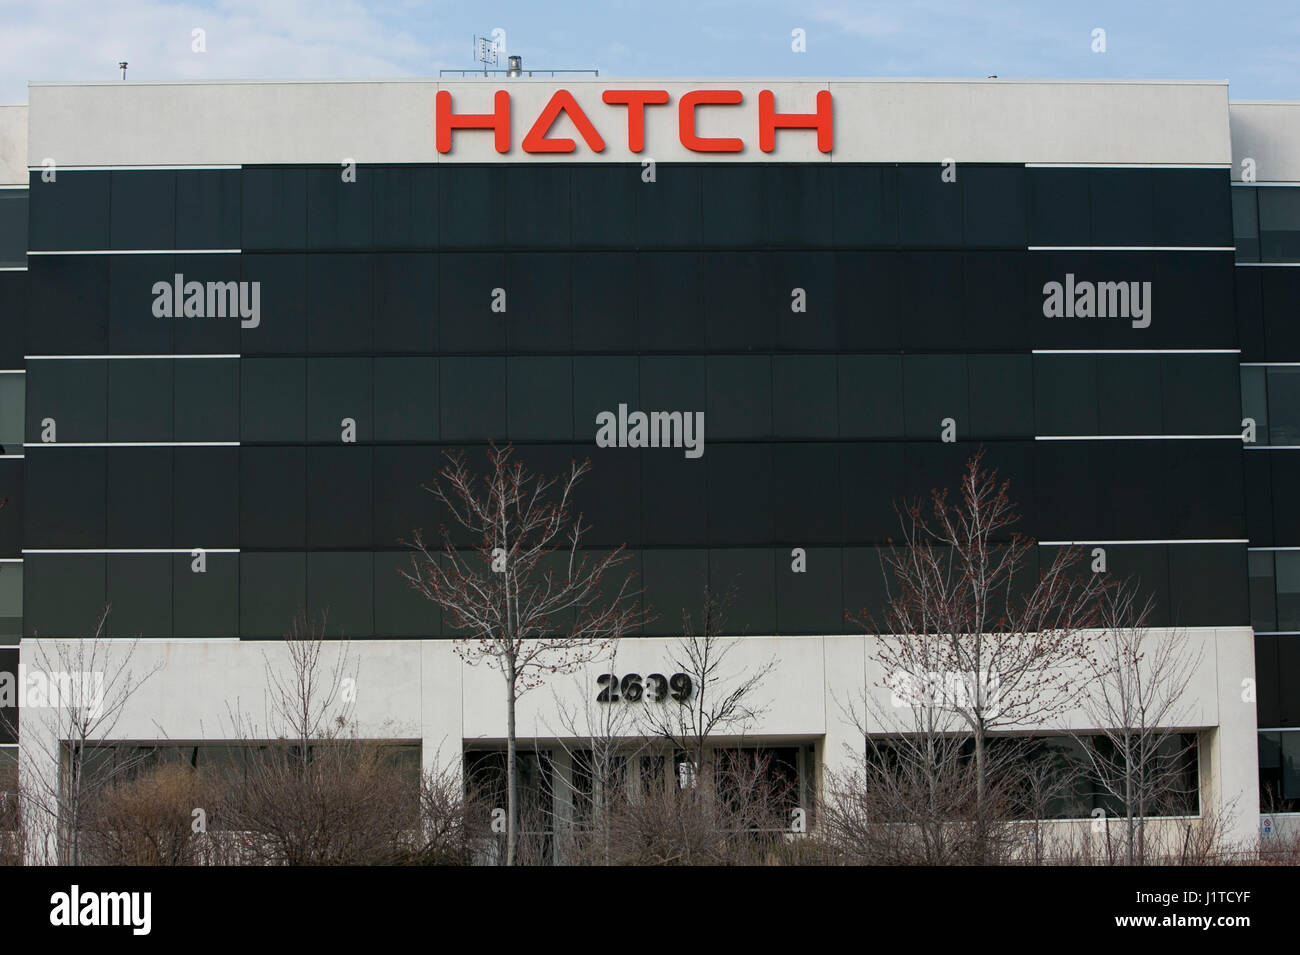 A logo sign outside of the headquarters of Hatch in Mississauga, Ontario, Canada, on April 15, 2017. - Stock Image